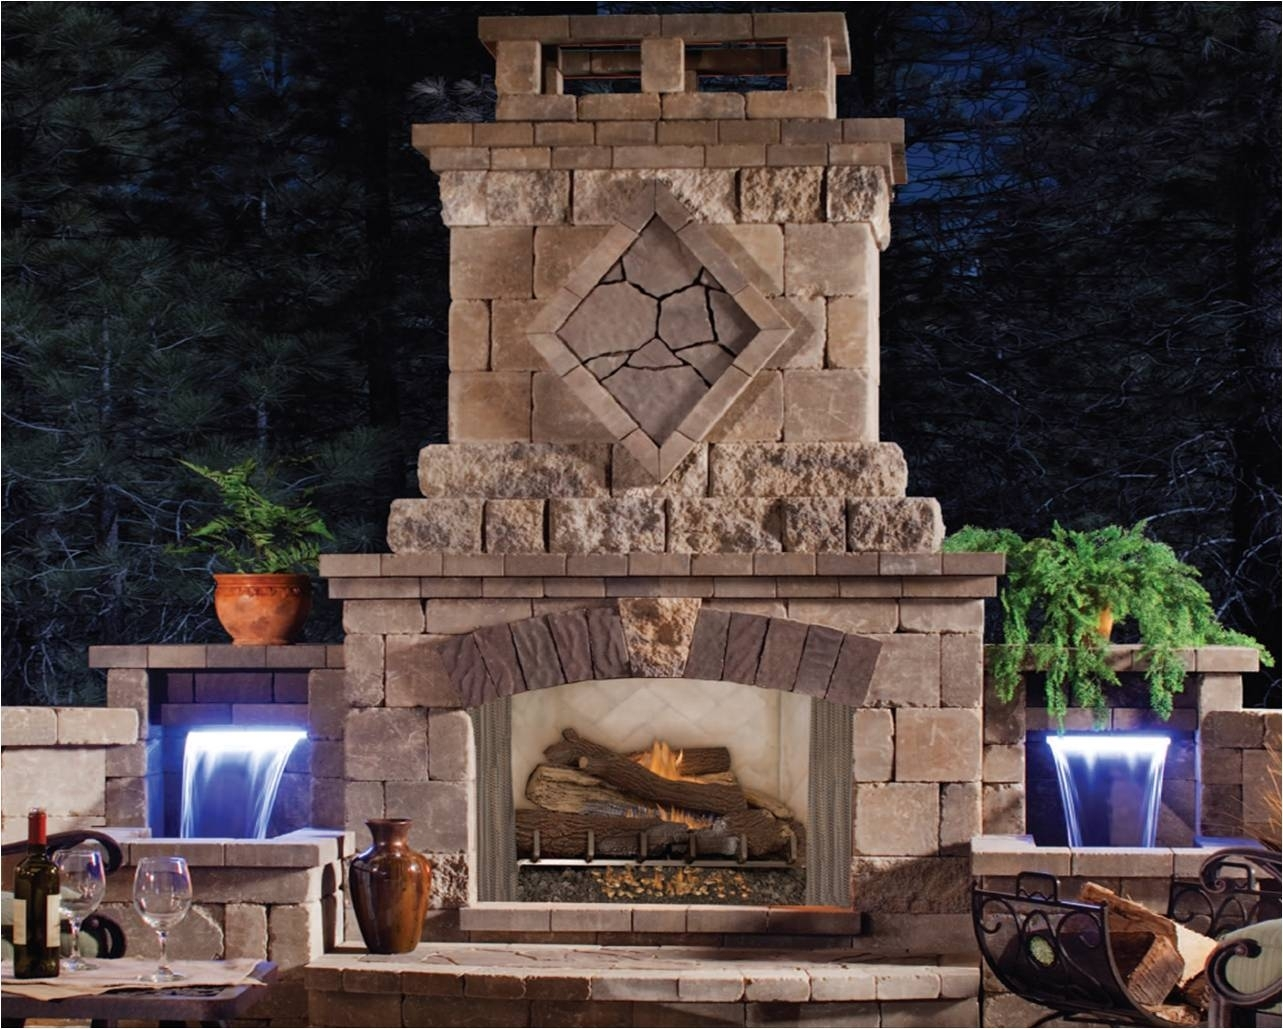 Image of: Partying On Outdoor Fireplace Bedroom Ideas In Outdoor Wood Fireplace Design Outdoor Wood Fireplace Designs